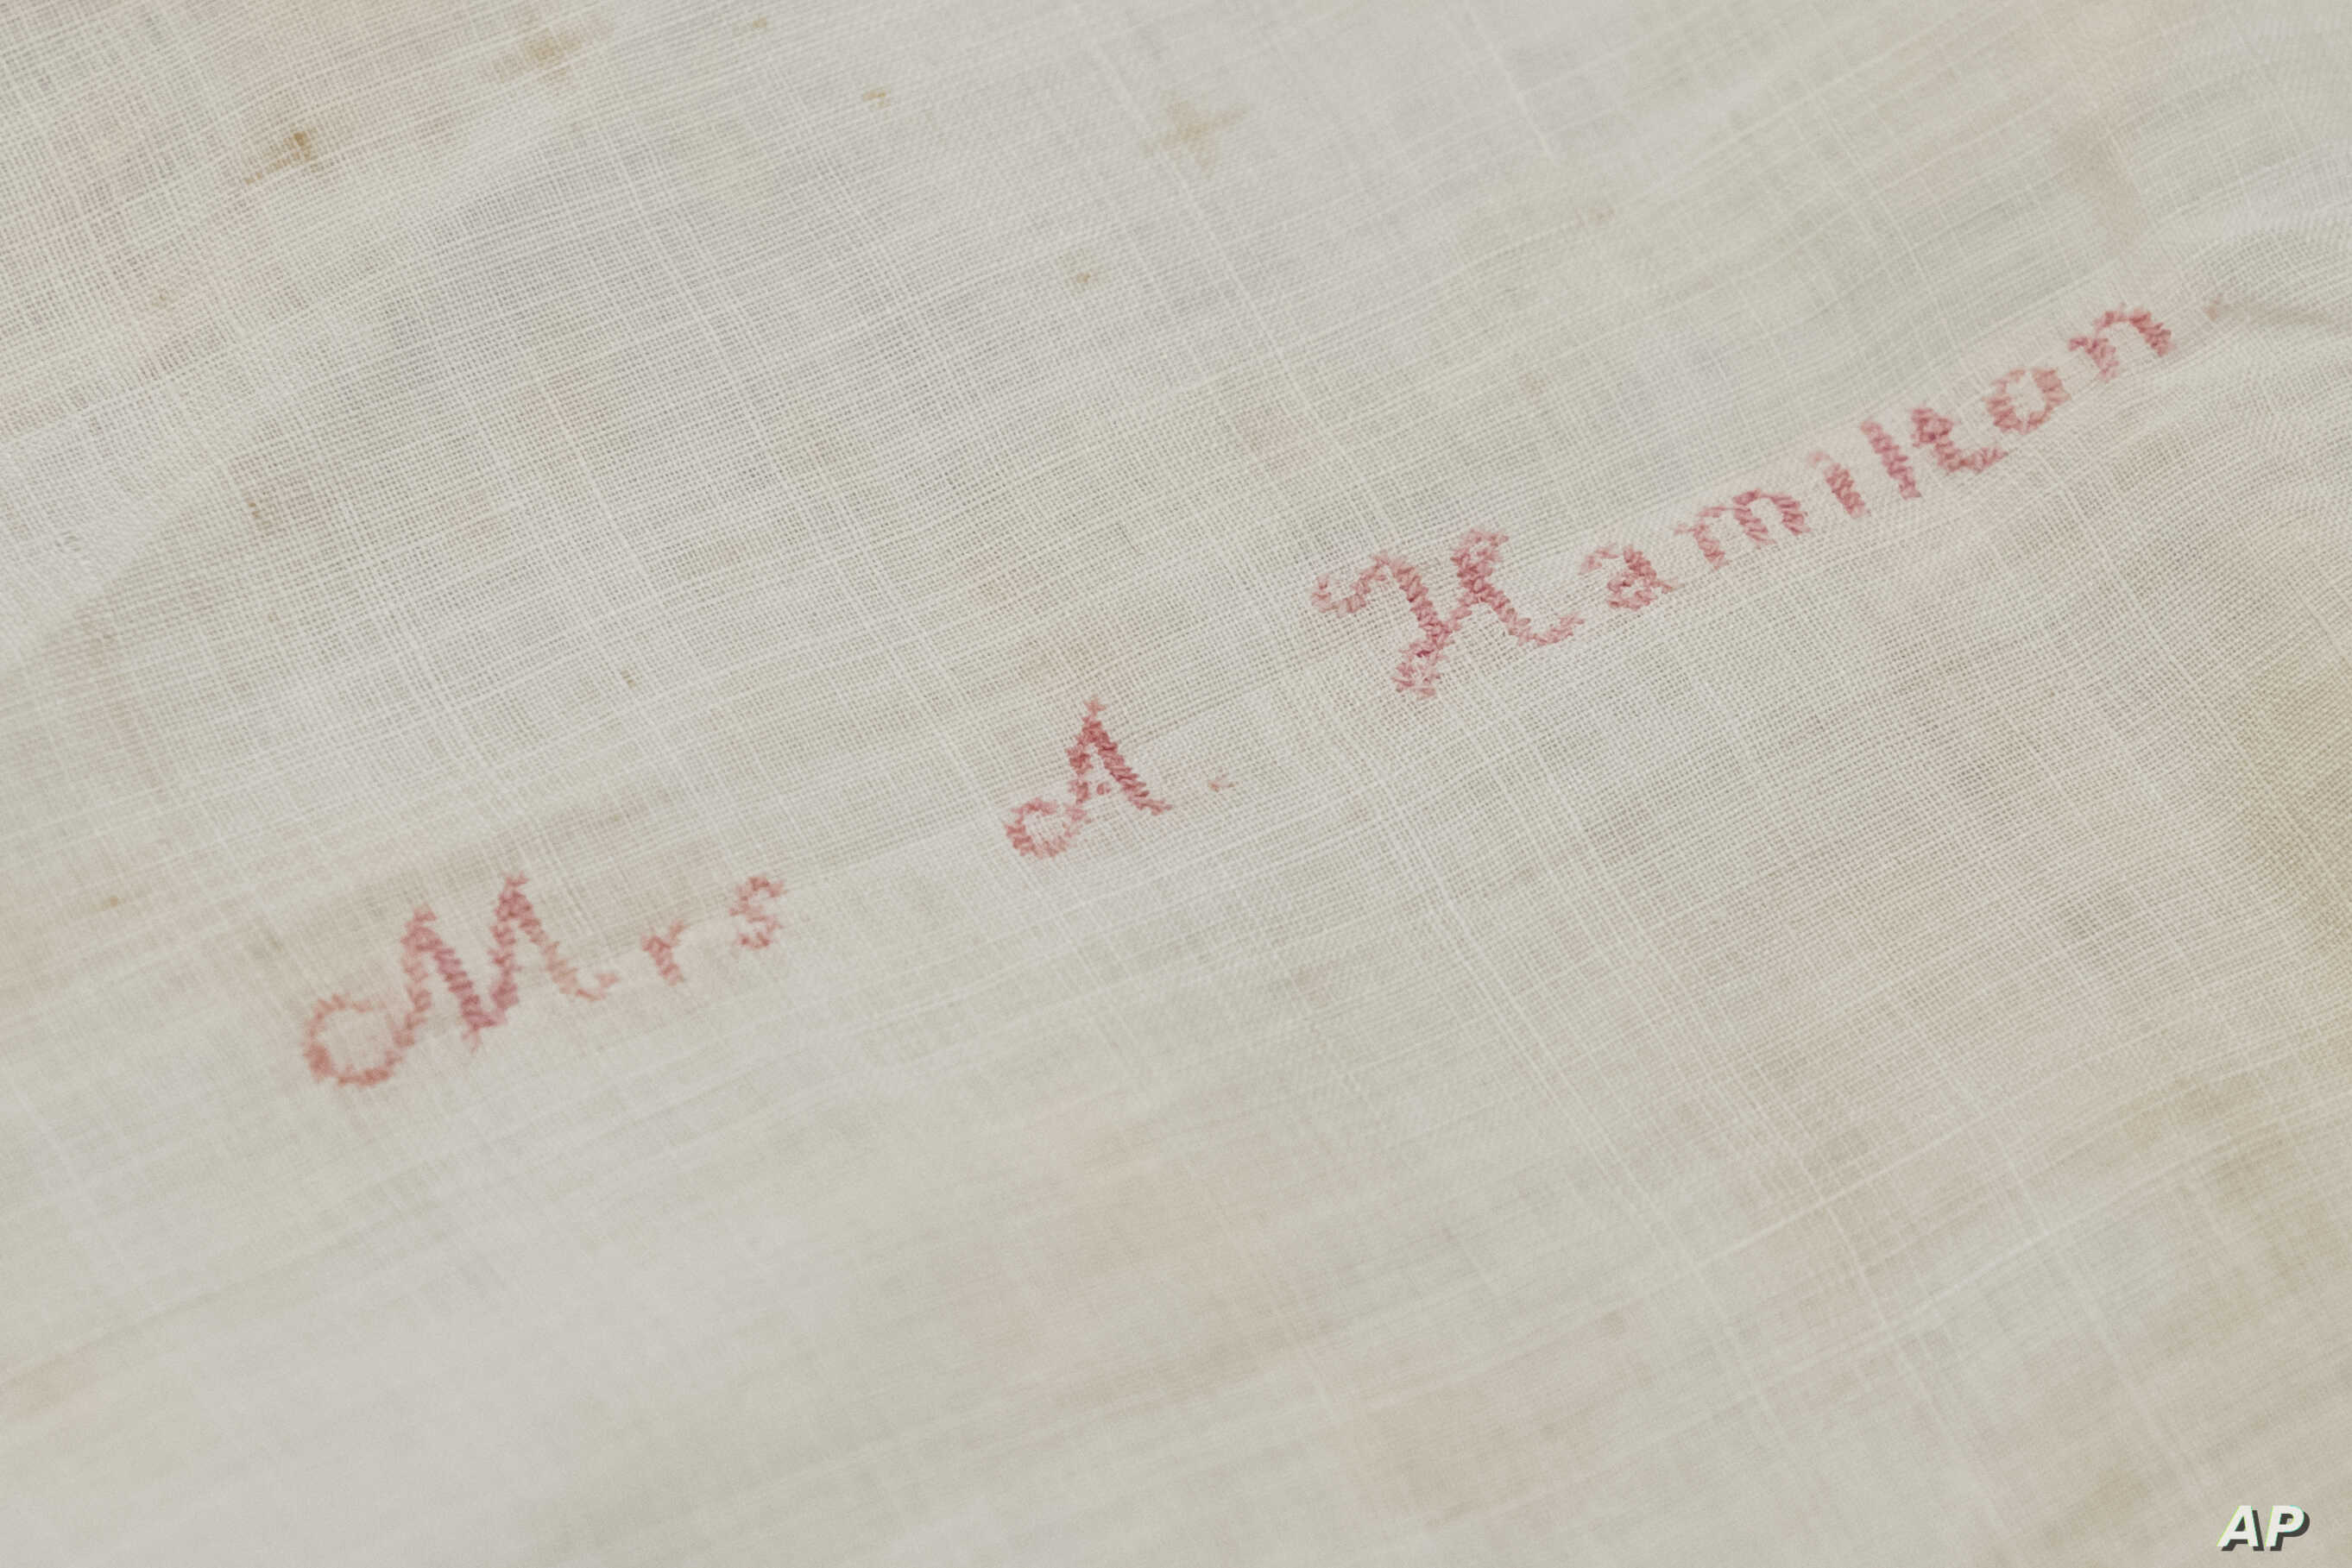 Shown is Alexander Hamilton's widow Elizabeth Hamilton's handkerchief embroidered with her name at the Museum of the American Revolution in Philadelphia, Nov. 12, 2018.